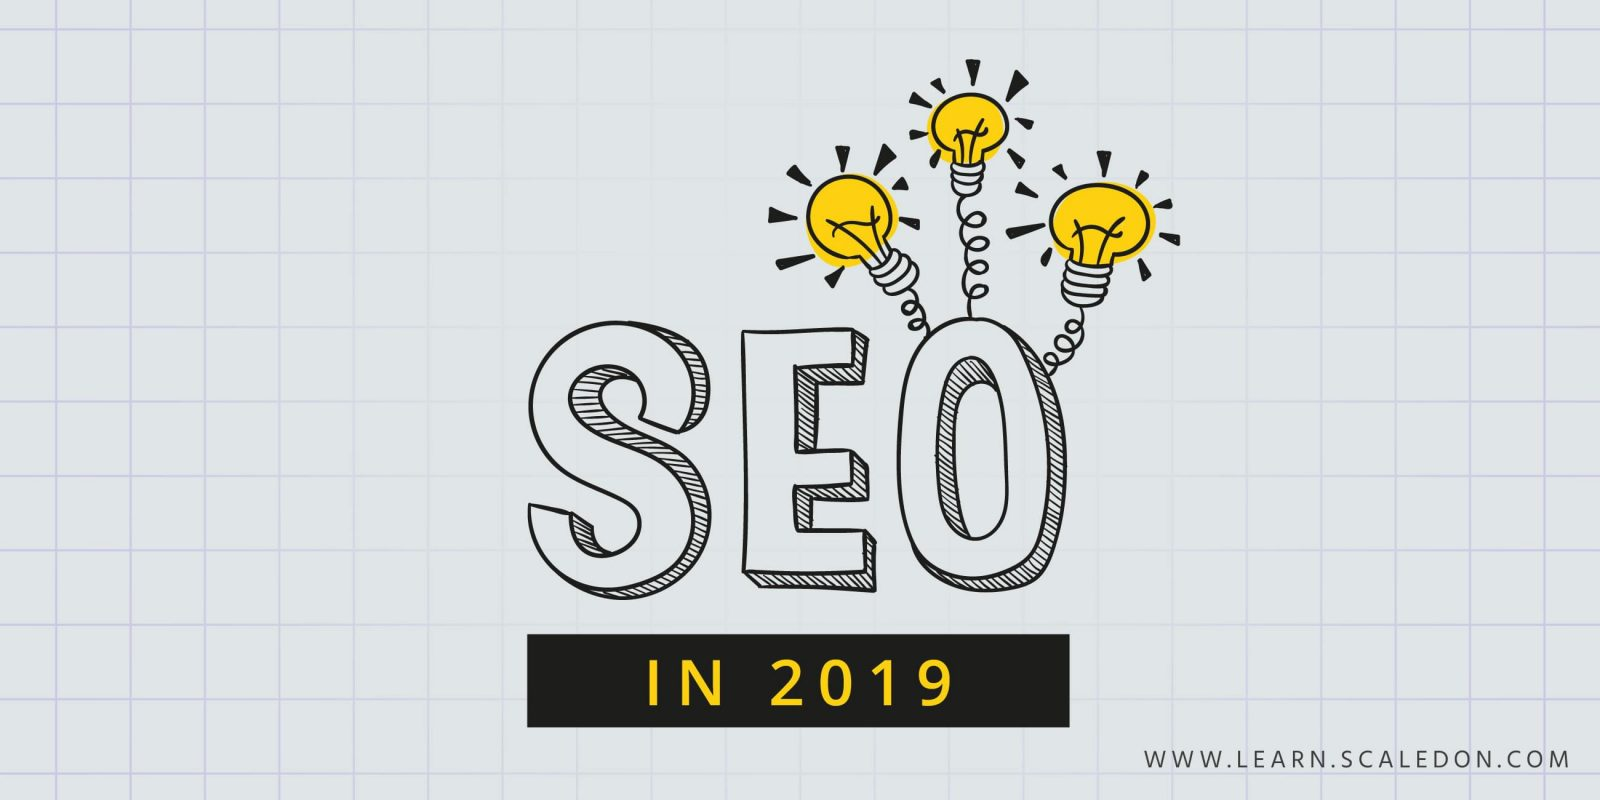 The Complete Guide to SEO in 2019